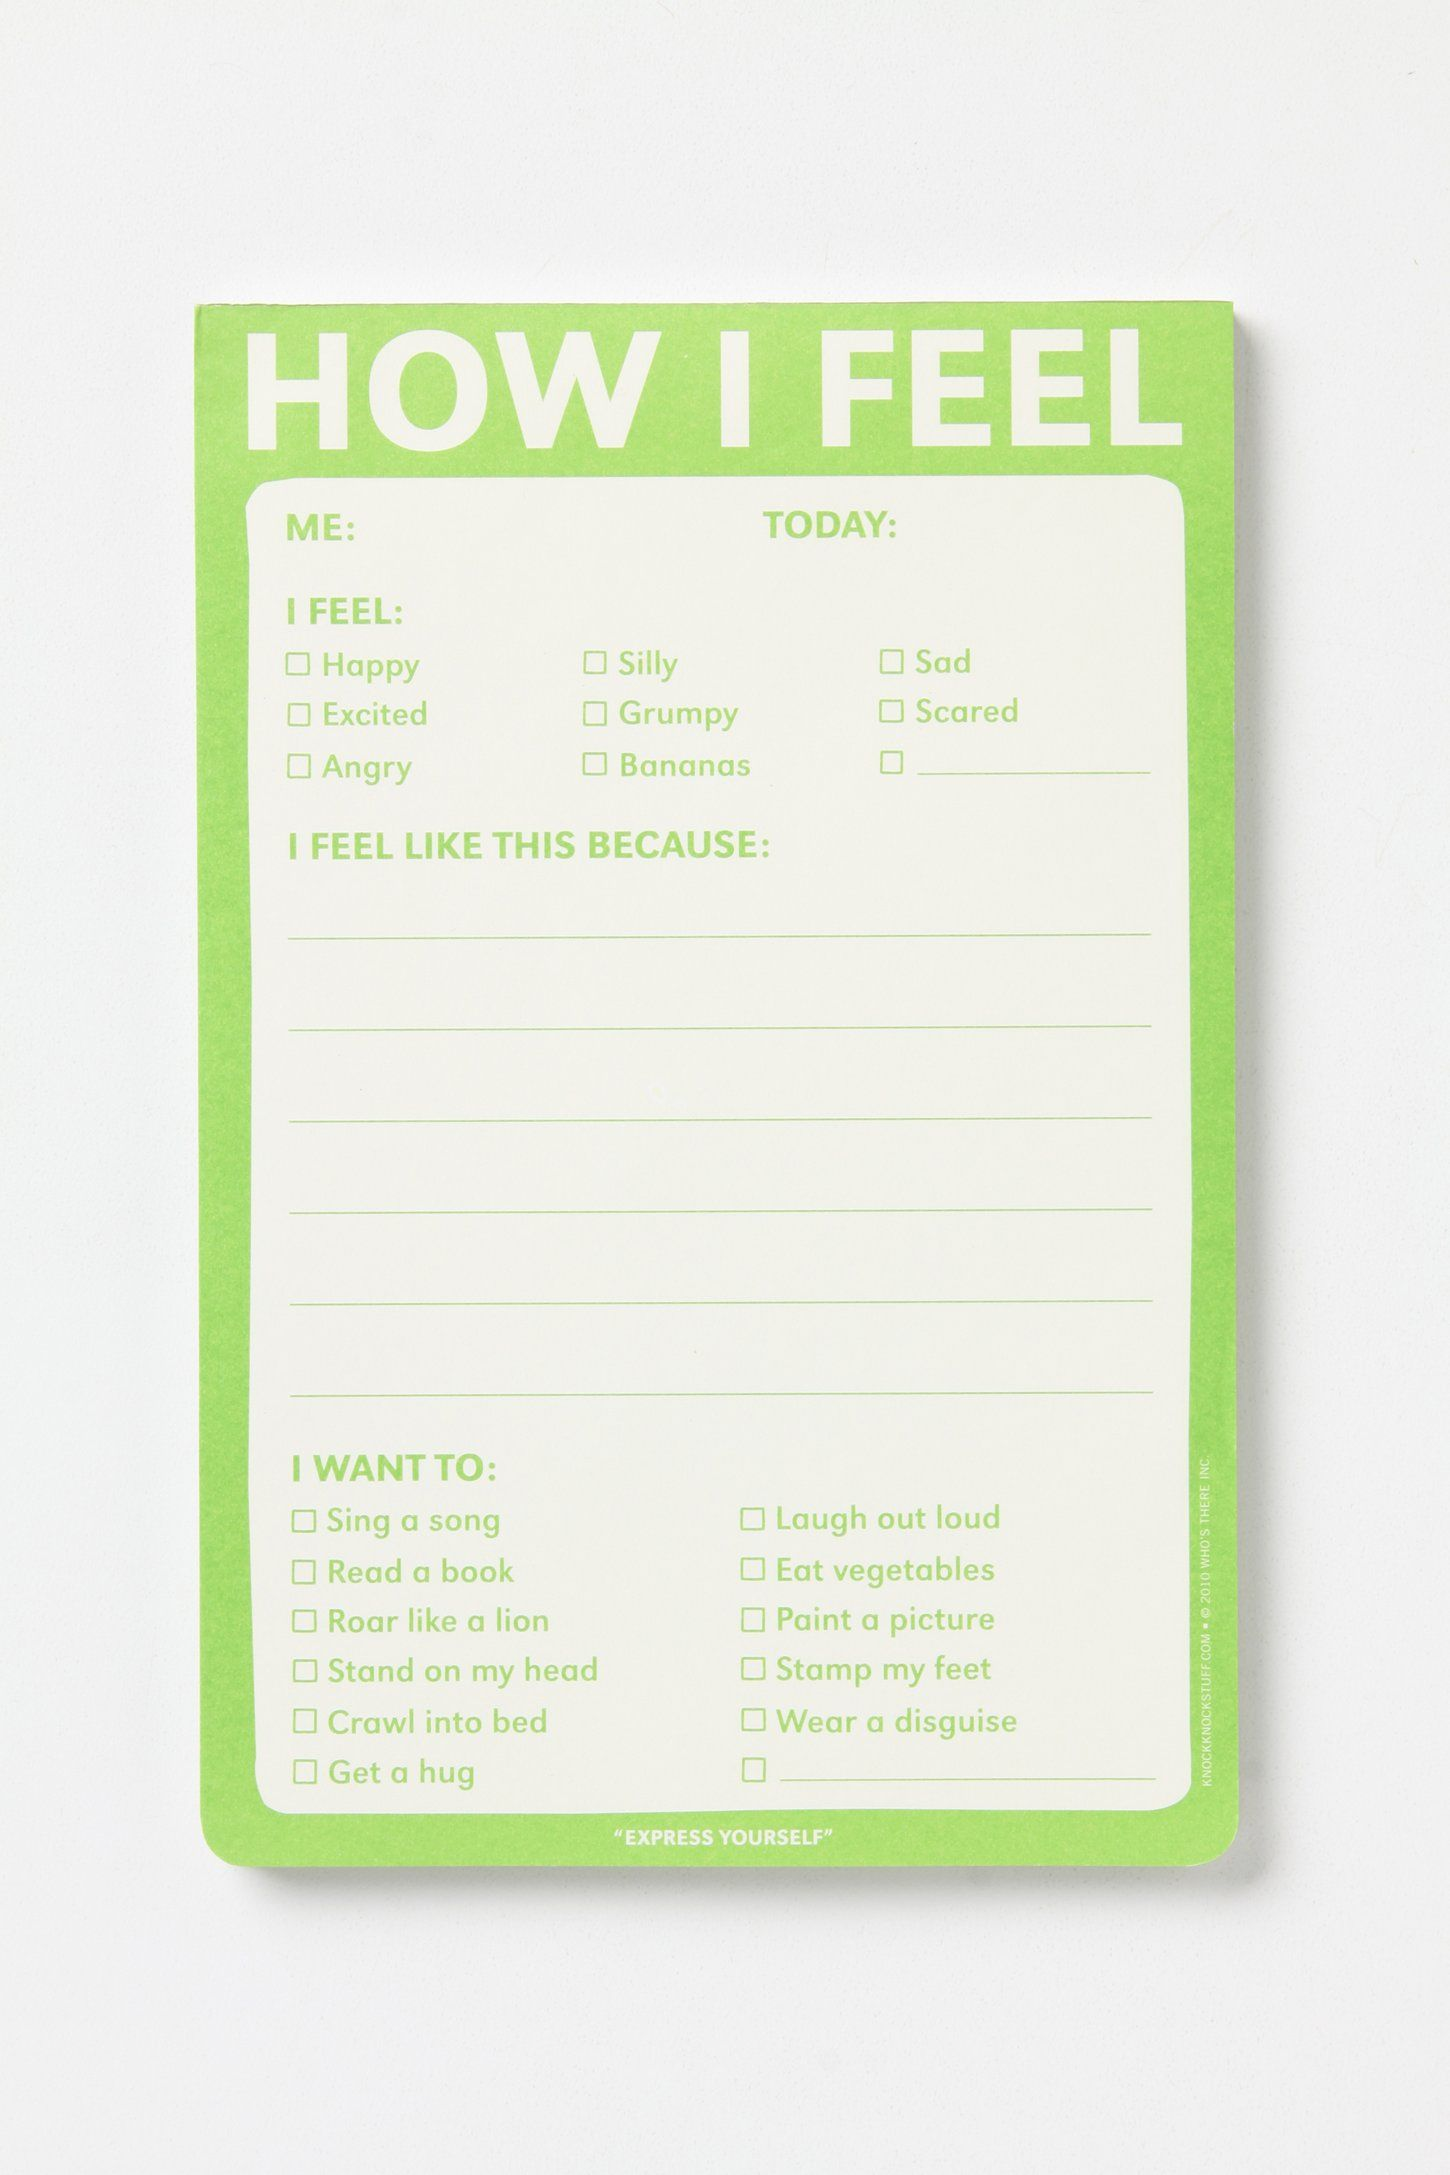 This Is Hilarious I Would Have Totally Filled This Out